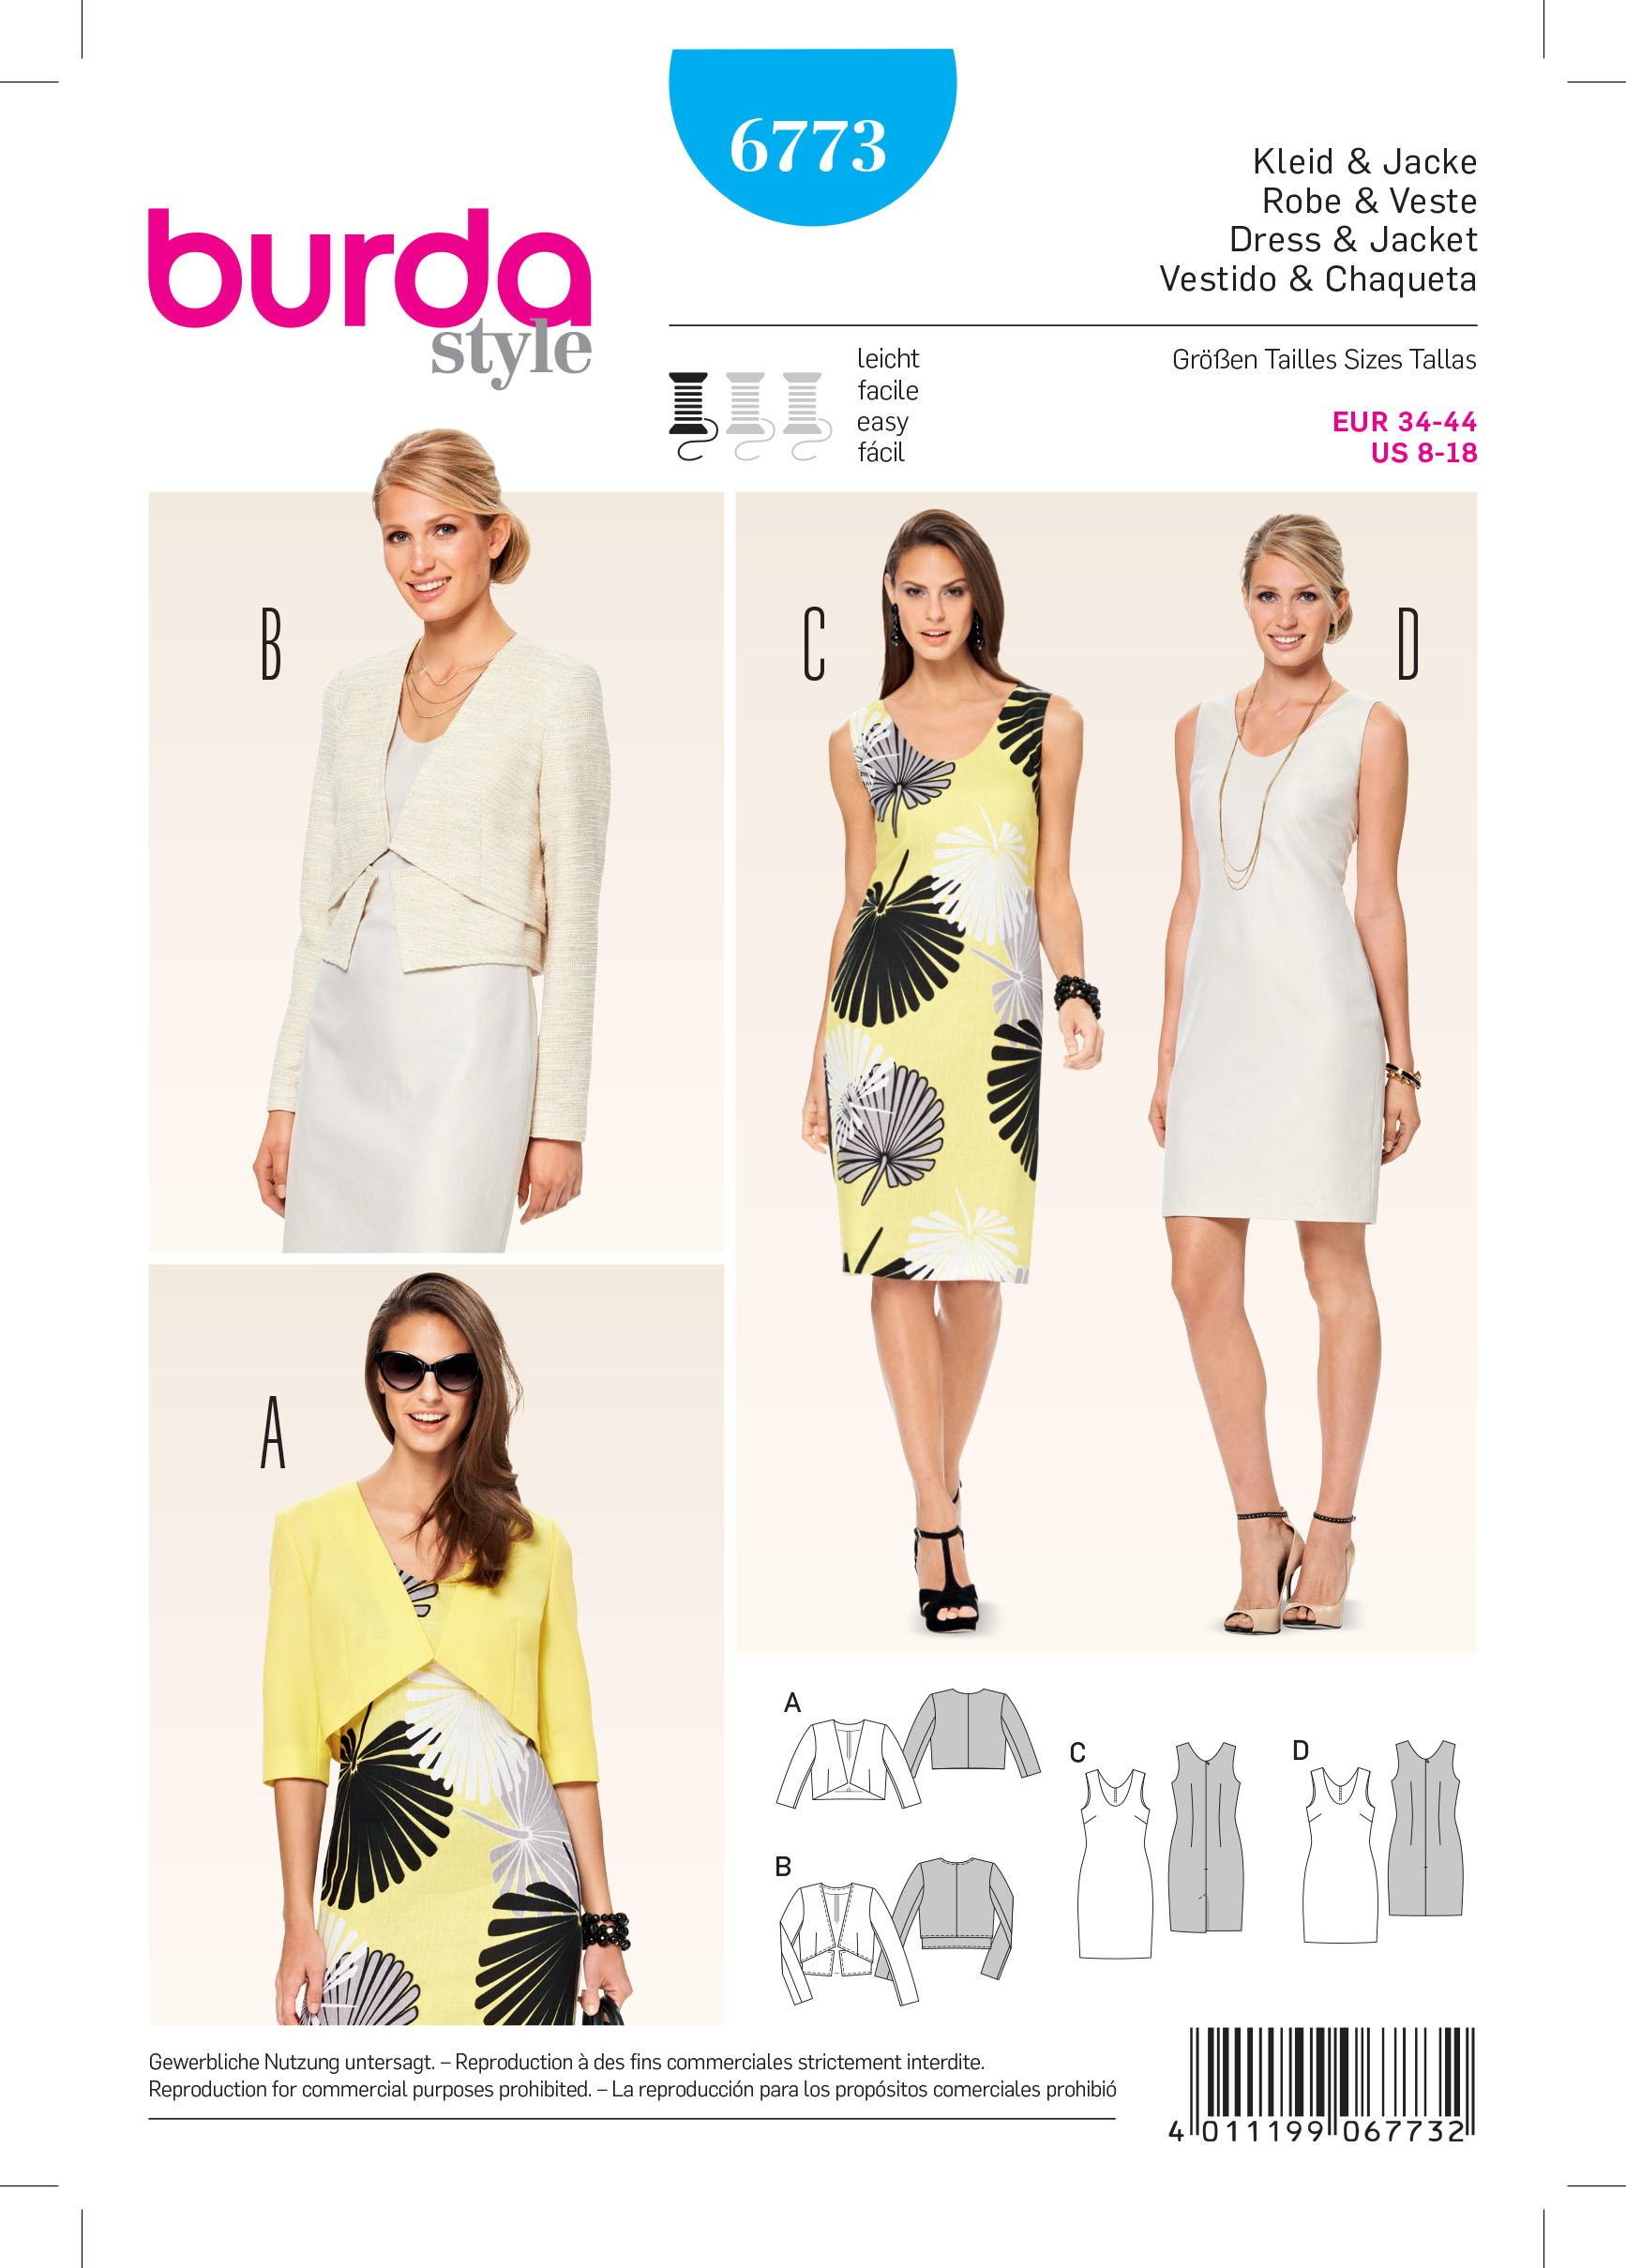 Burda B6773 Coordinates, Trousersuits, Suits Sewing Pattern